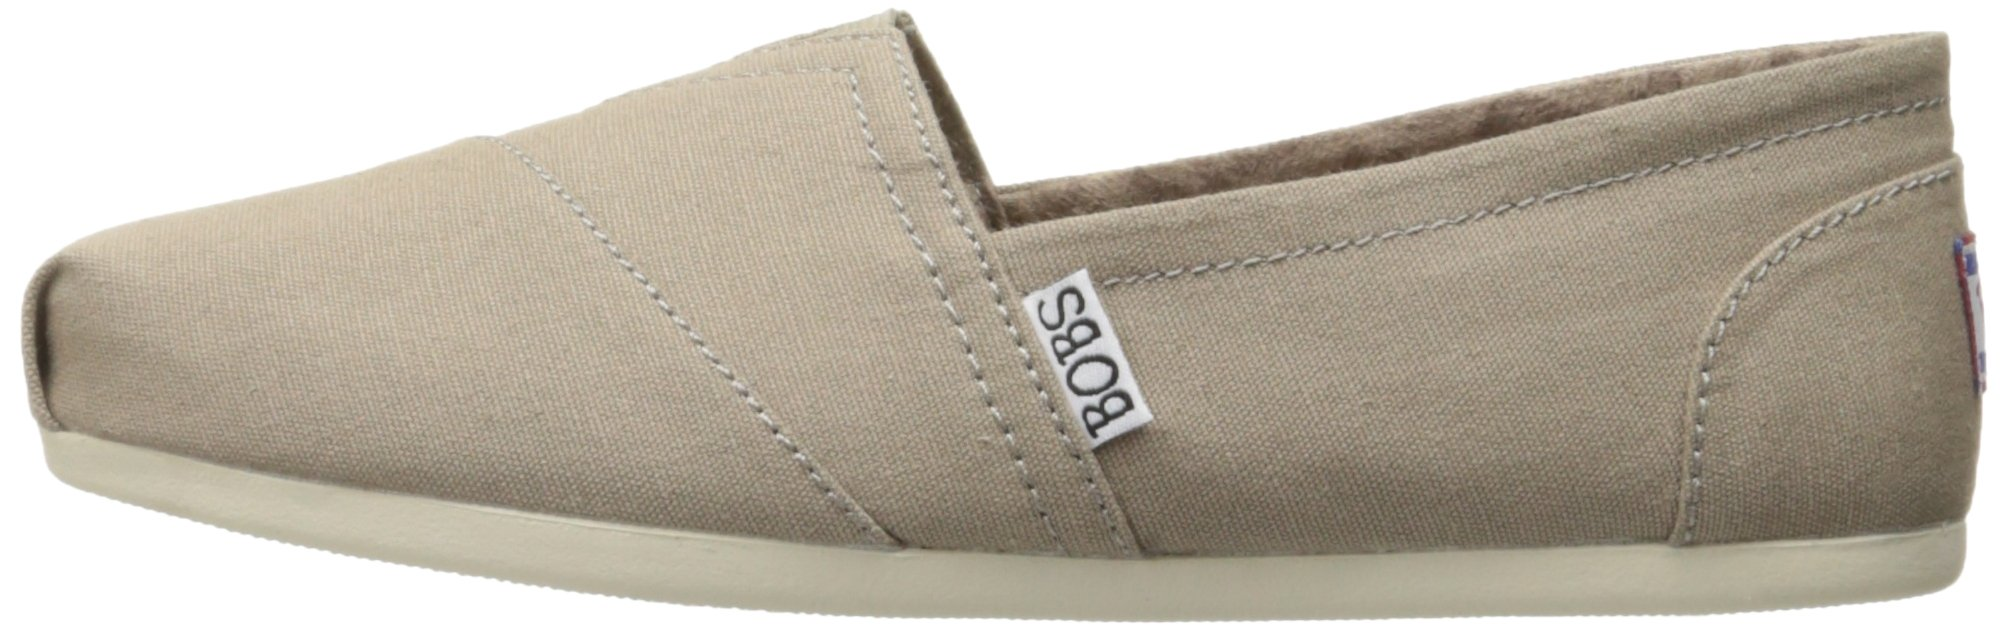 Skechers BOBS Women's Plush-Peace and Love Flat, Taupe, 8.5 W US by Skechers (Image #5)